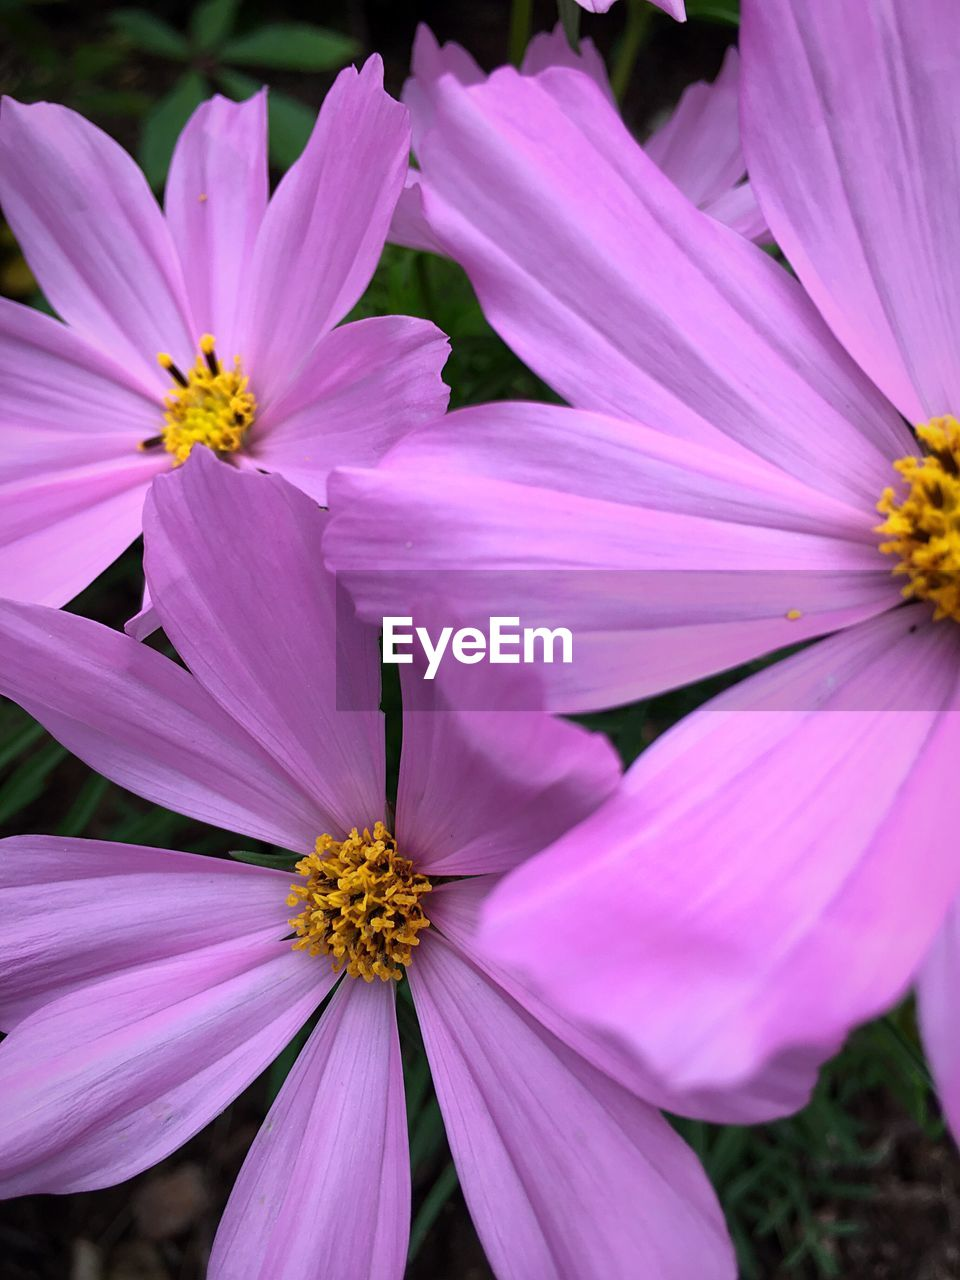 flower, petal, fragility, flower head, beauty in nature, freshness, nature, pollen, growth, blooming, outdoors, close-up, no people, pink color, plant, day, yellow, stamen, purple, cosmos flower, osteospermum